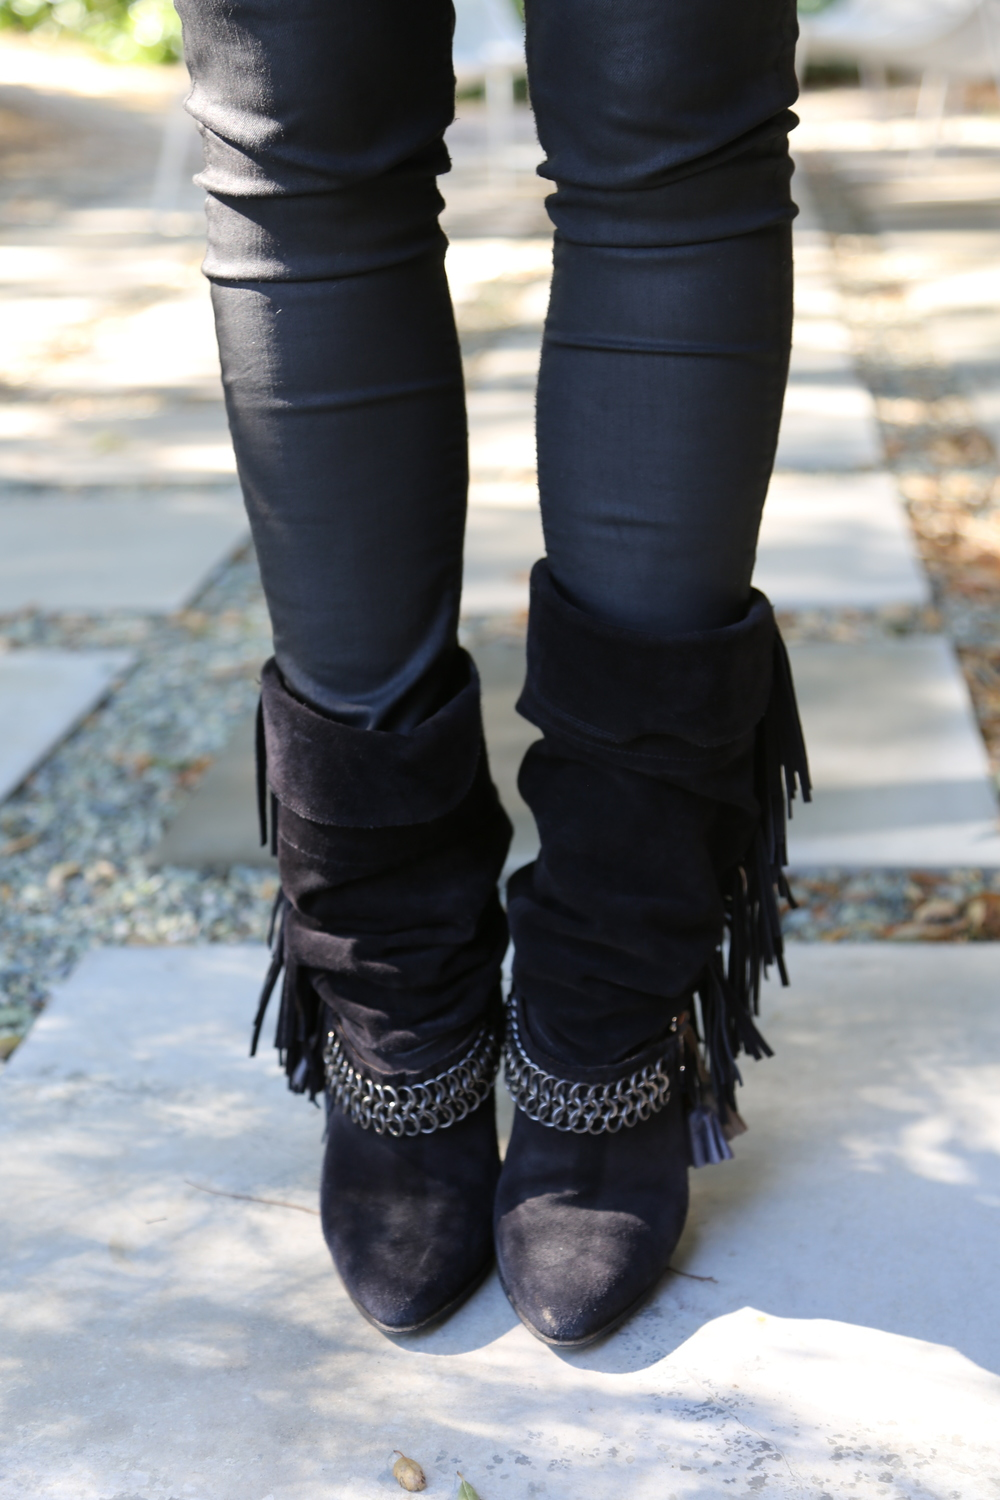 VANESSA-BELETIC-ISABEL-MARANT-FRINGE-BOOT-LOS-ANGELES.JPG